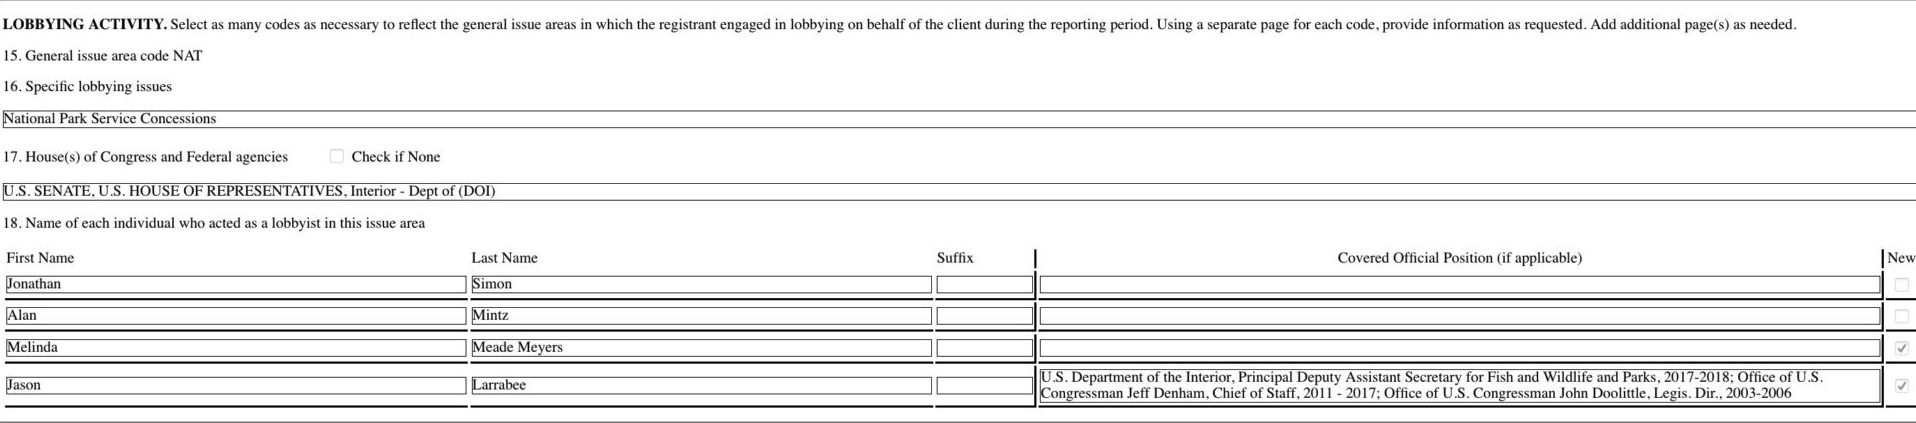 Former Interior official Jason Larrabee filed a disclosure form showing that, at Van Ness Feldman, he worked for a client seeking a contract with the Interior Department's National Park Service. Under question No. 18, the form lists Larrabee as the only lobbyist with previous federal work experience.